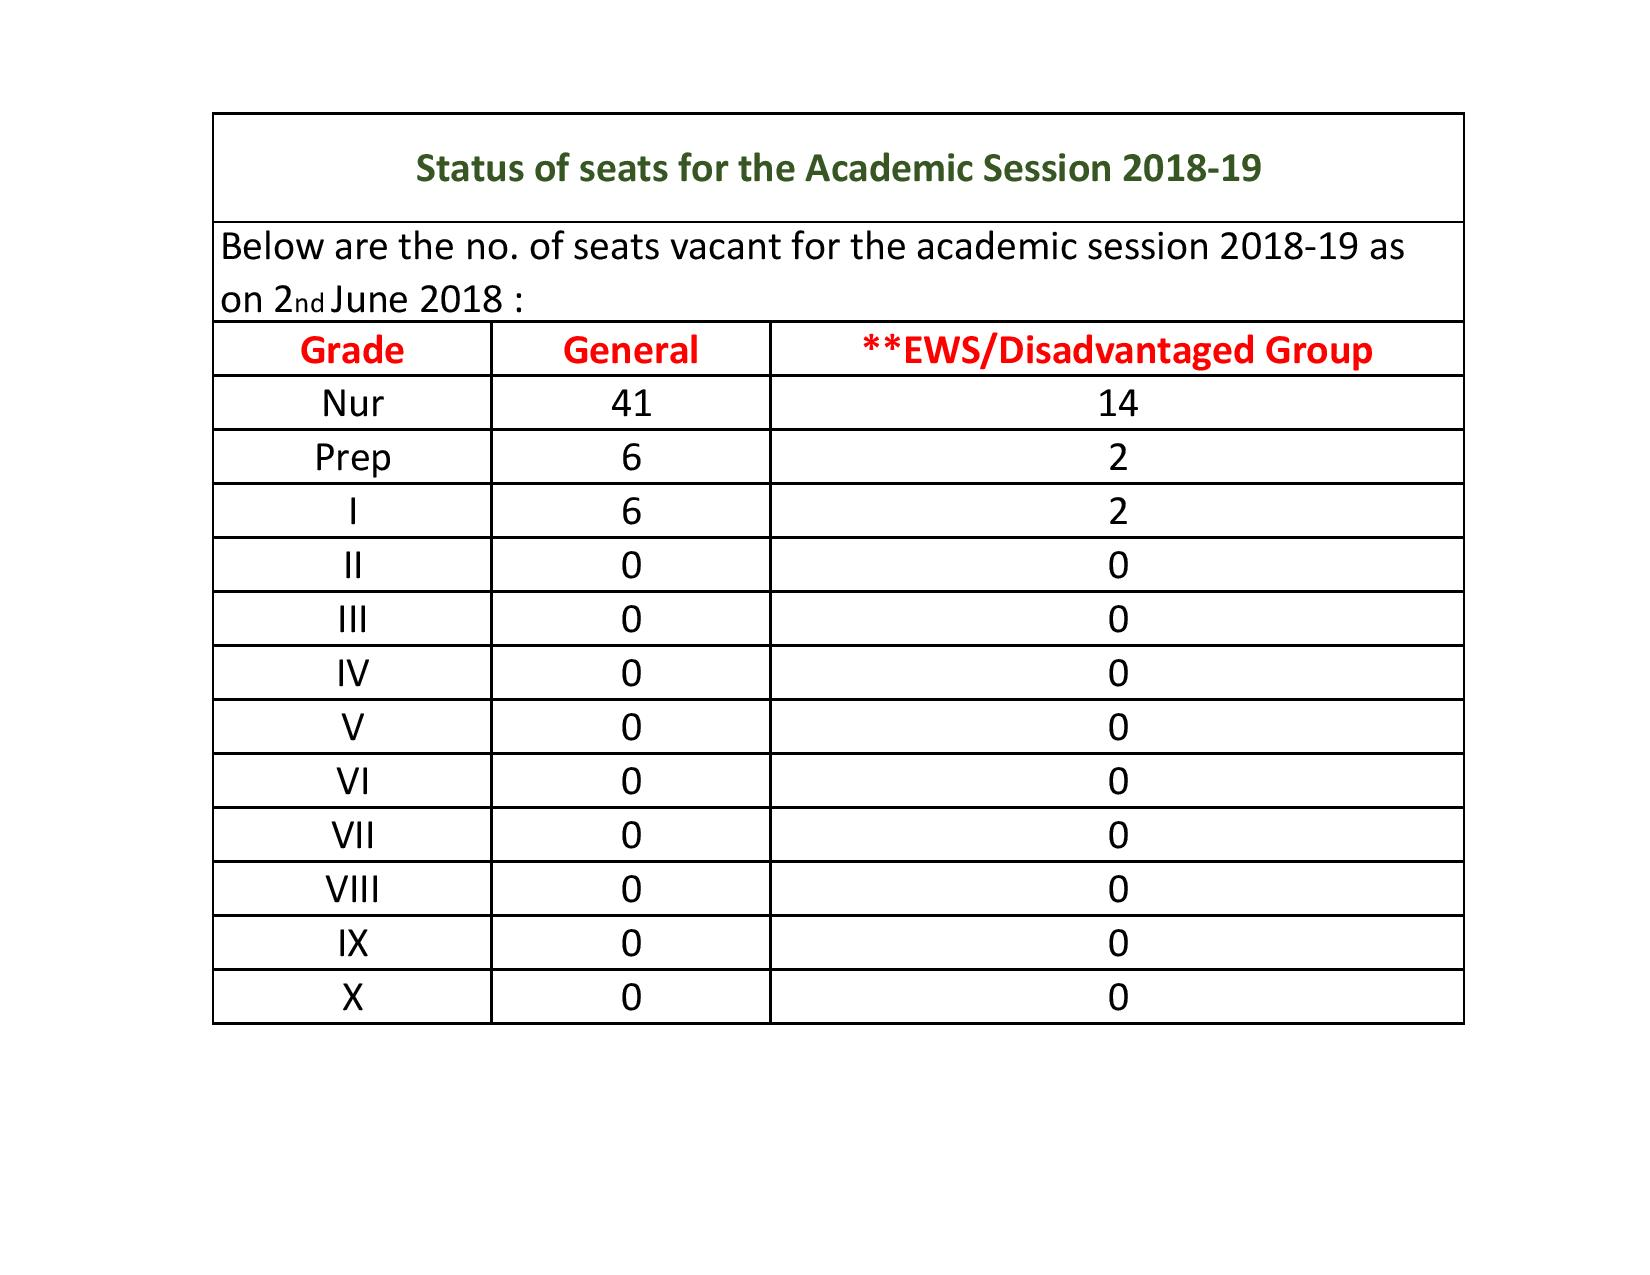 Status Of Entry Level Seats For The Academic Session 2018-19